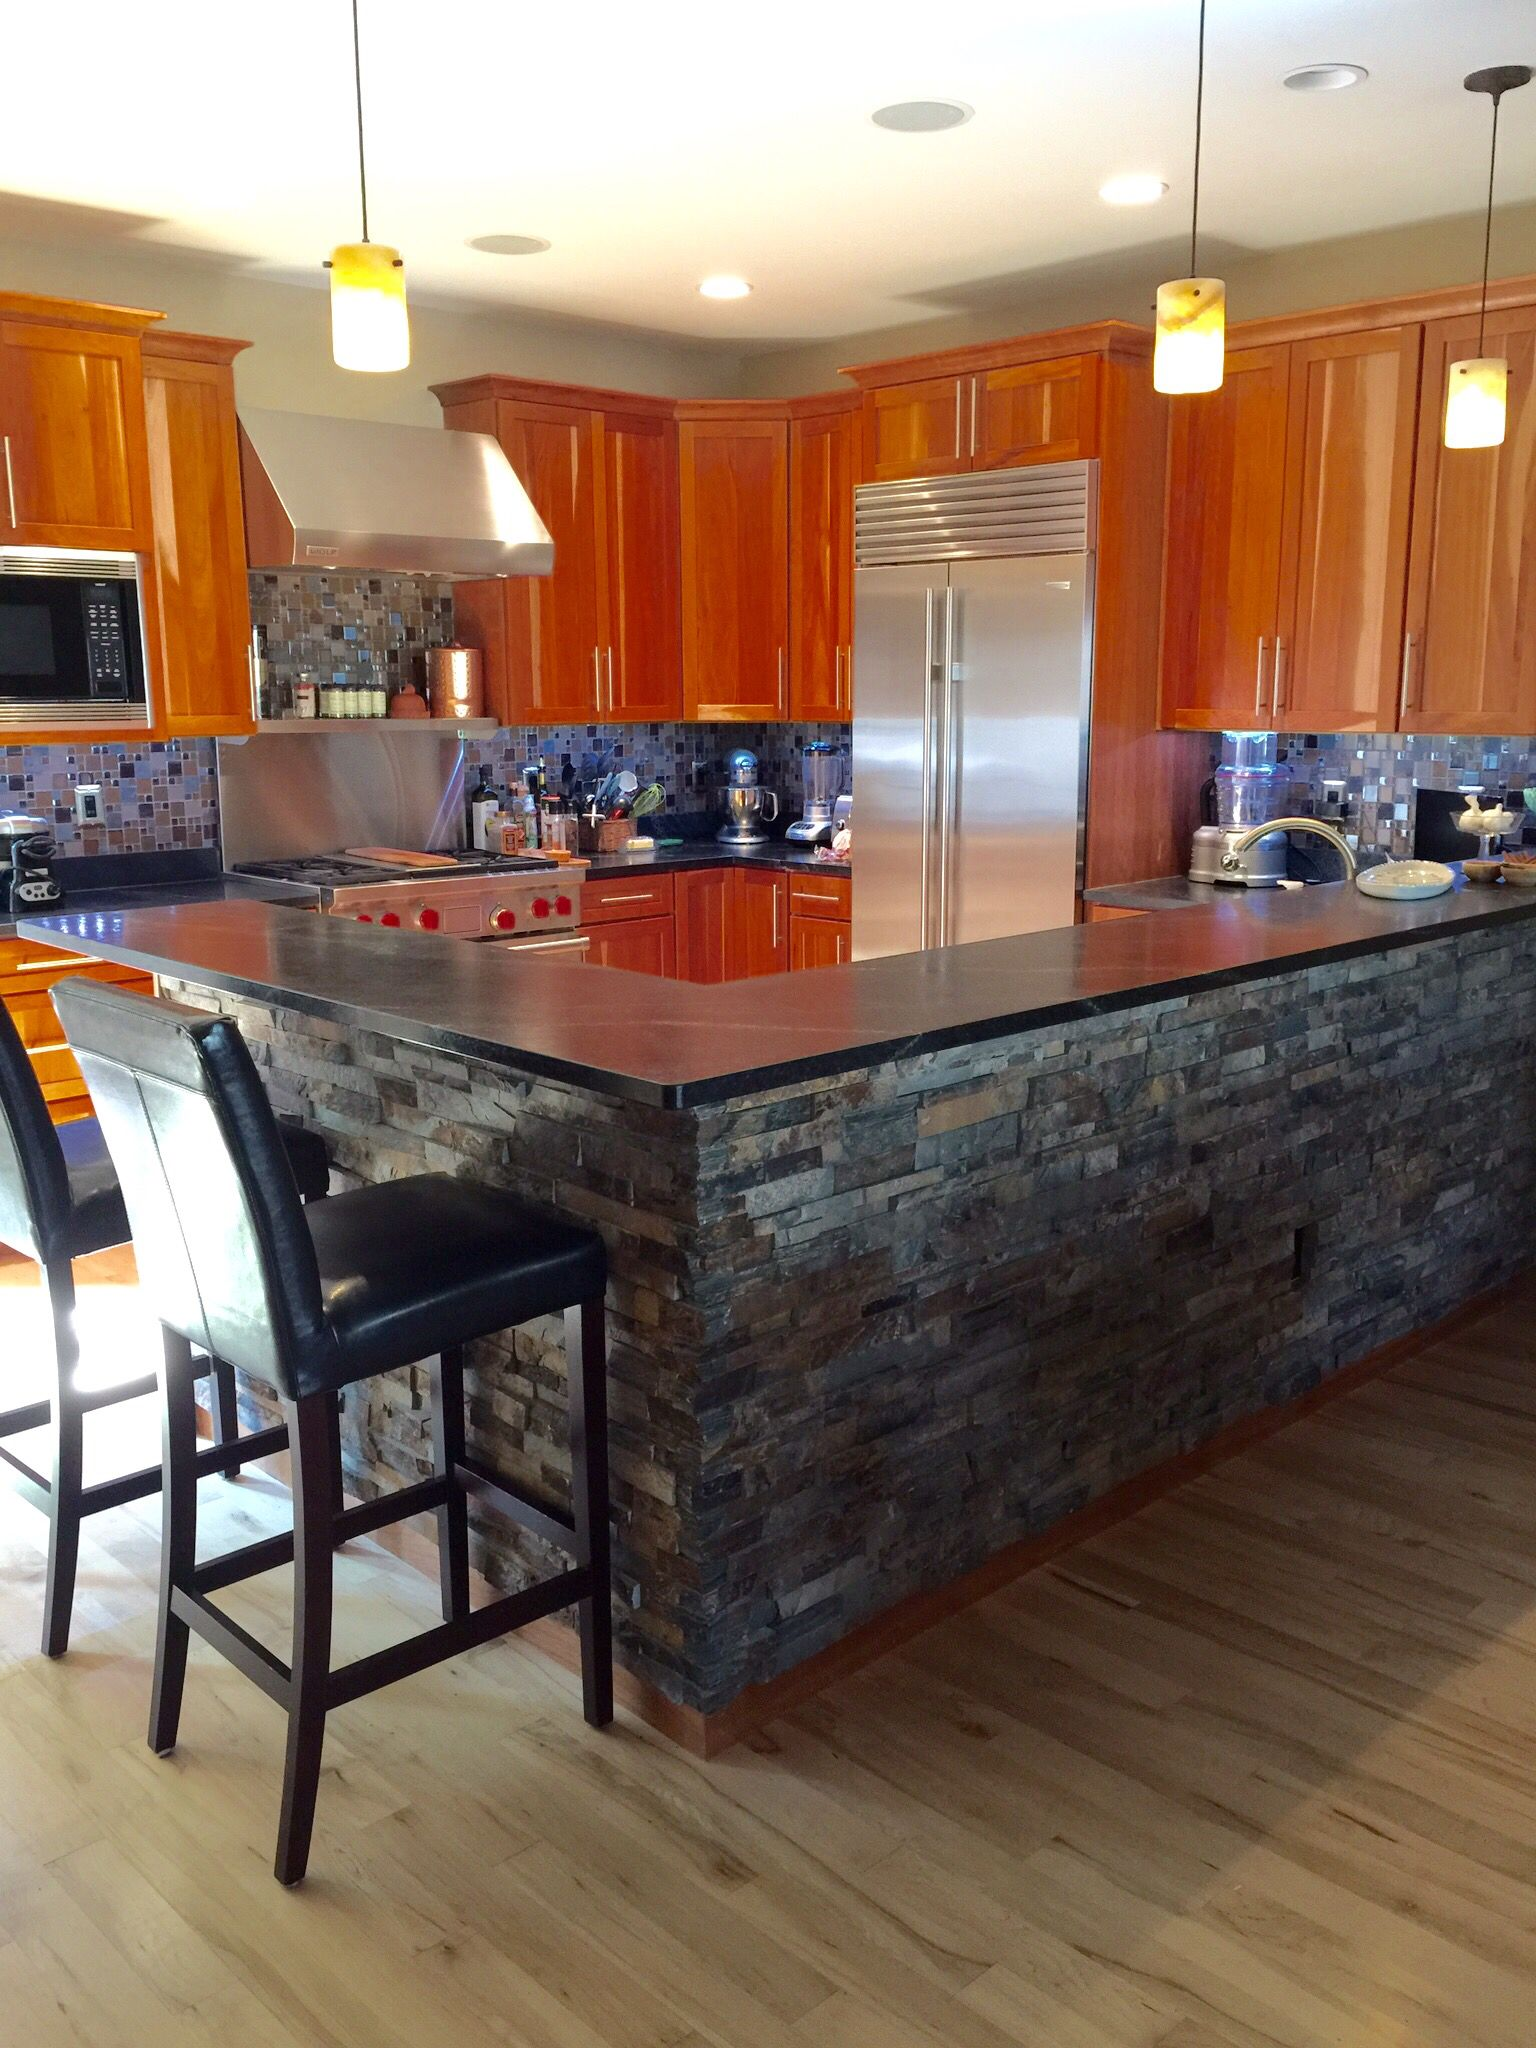 Awesome gourmet kitchen with dry stacked stone bar front and glass ...